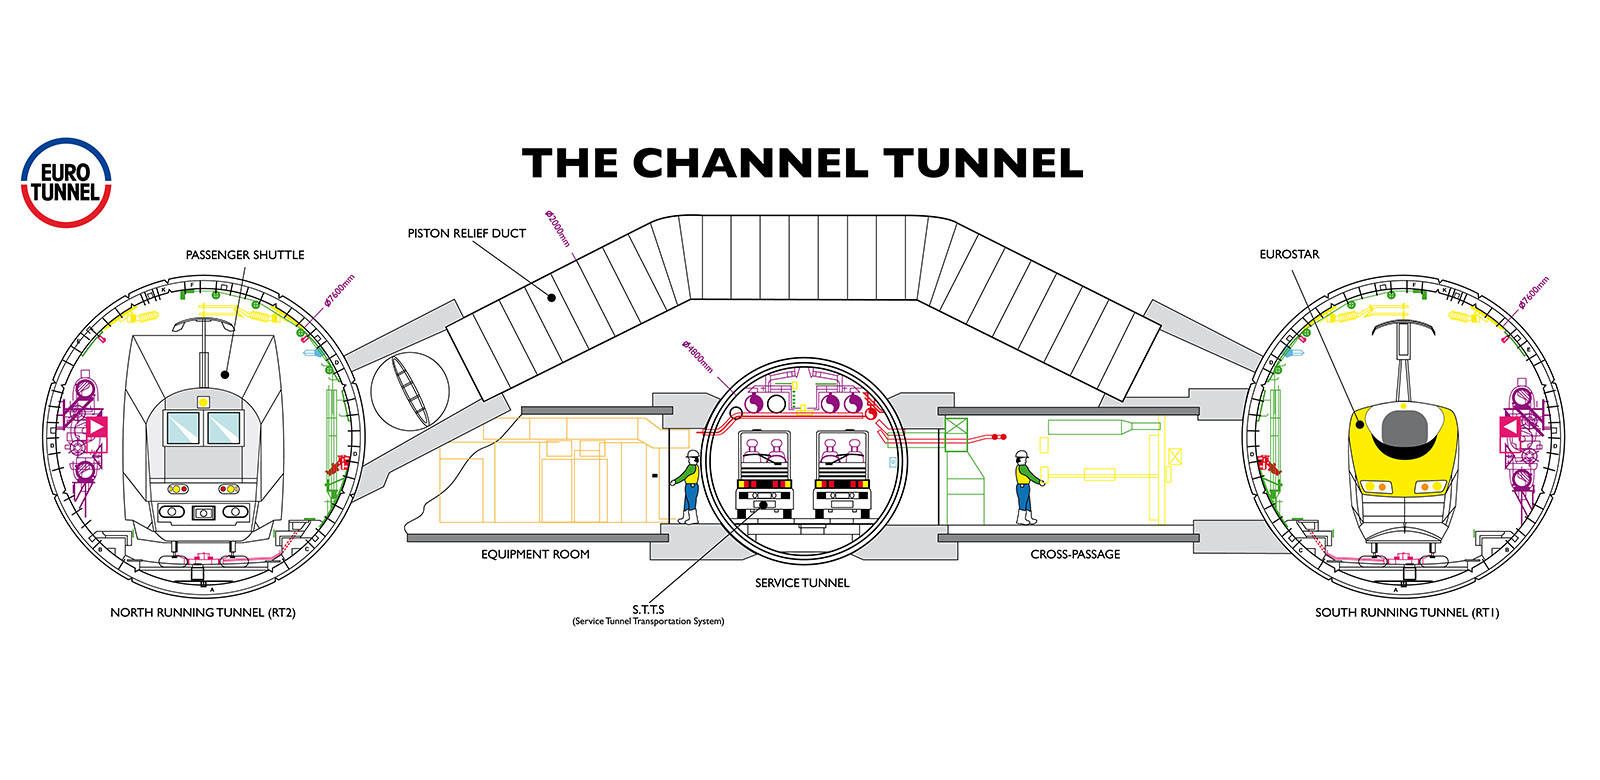 Eurotunnel - the channel tunnel schema